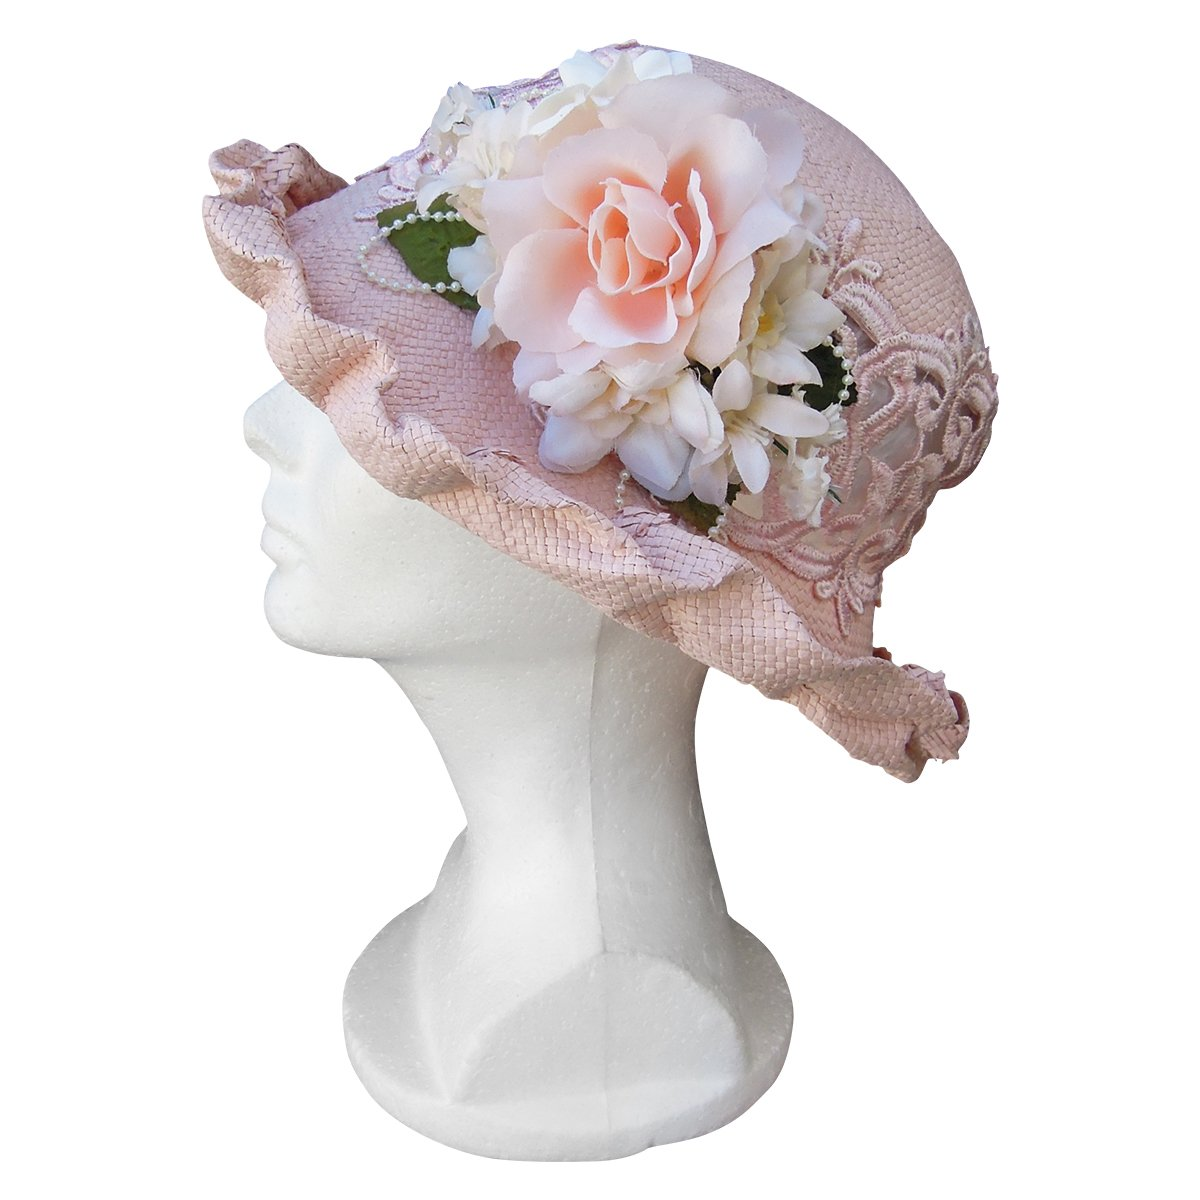 Vintage Inspired Wedding Accessories  Lace Straw Cutaway Hat Narrow Brim Ladies Cloche Church $45.00 AT vintagedancer.com